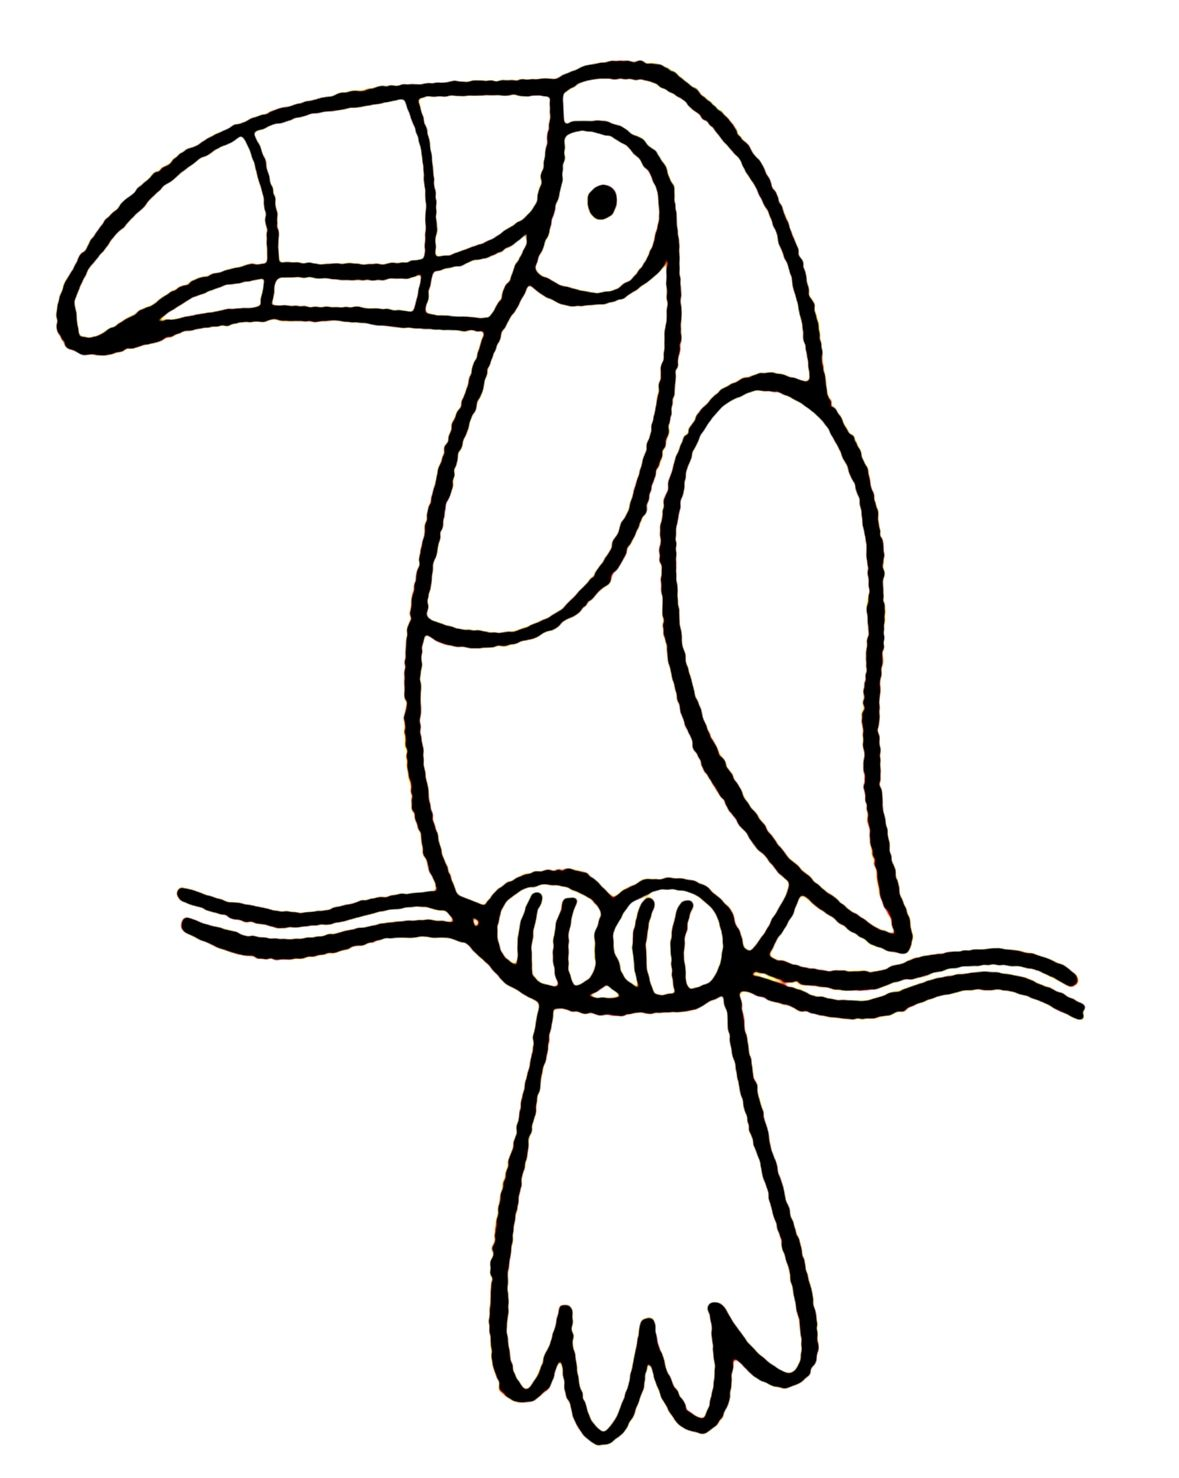 toucan coloring page  Google Search  1st grade  Pinterest